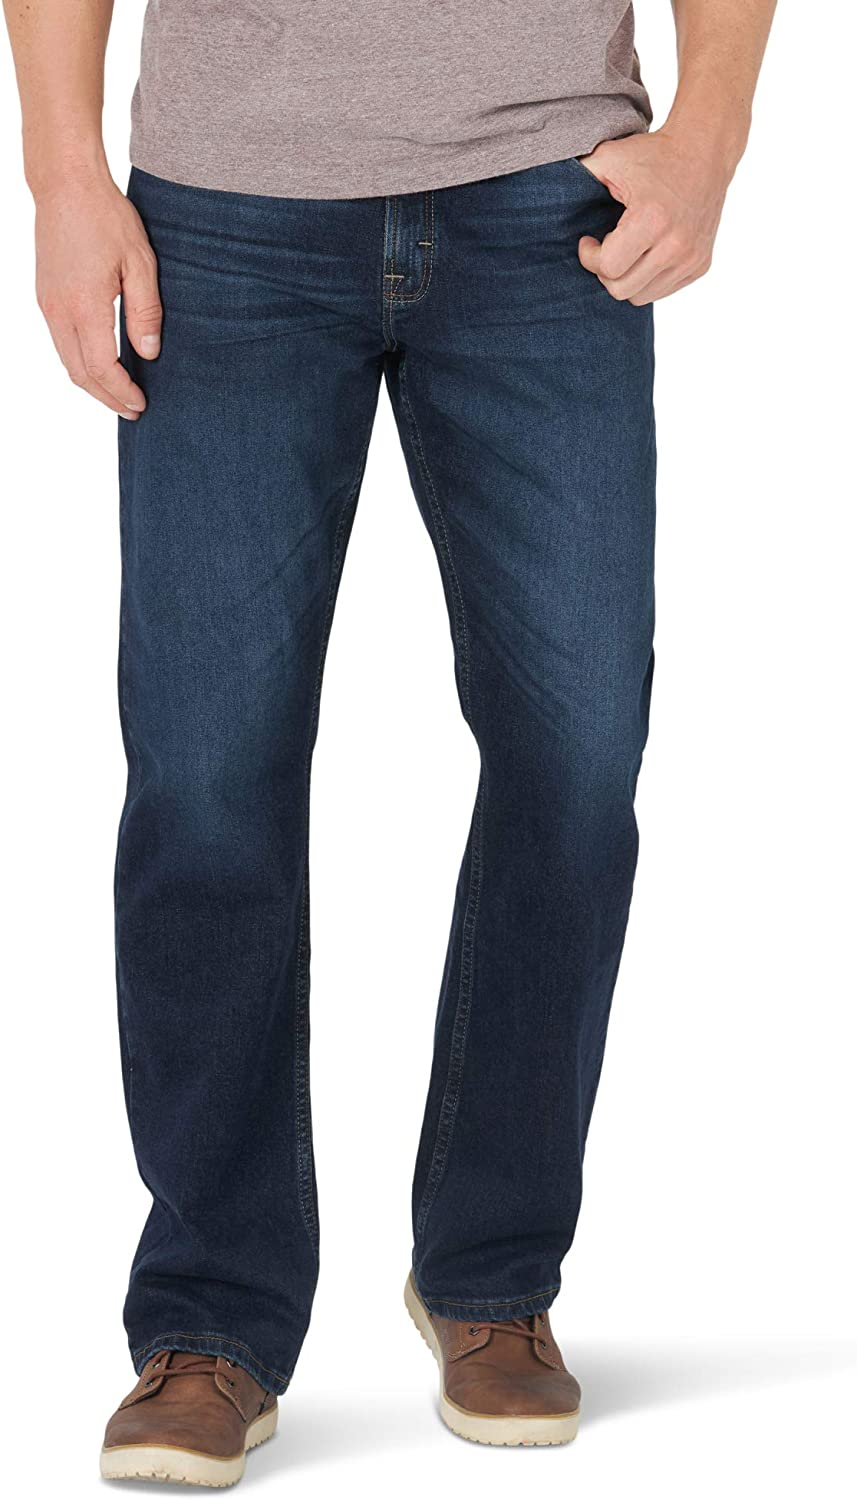 Five New life Star security Premium Relaxed Boot Jeans